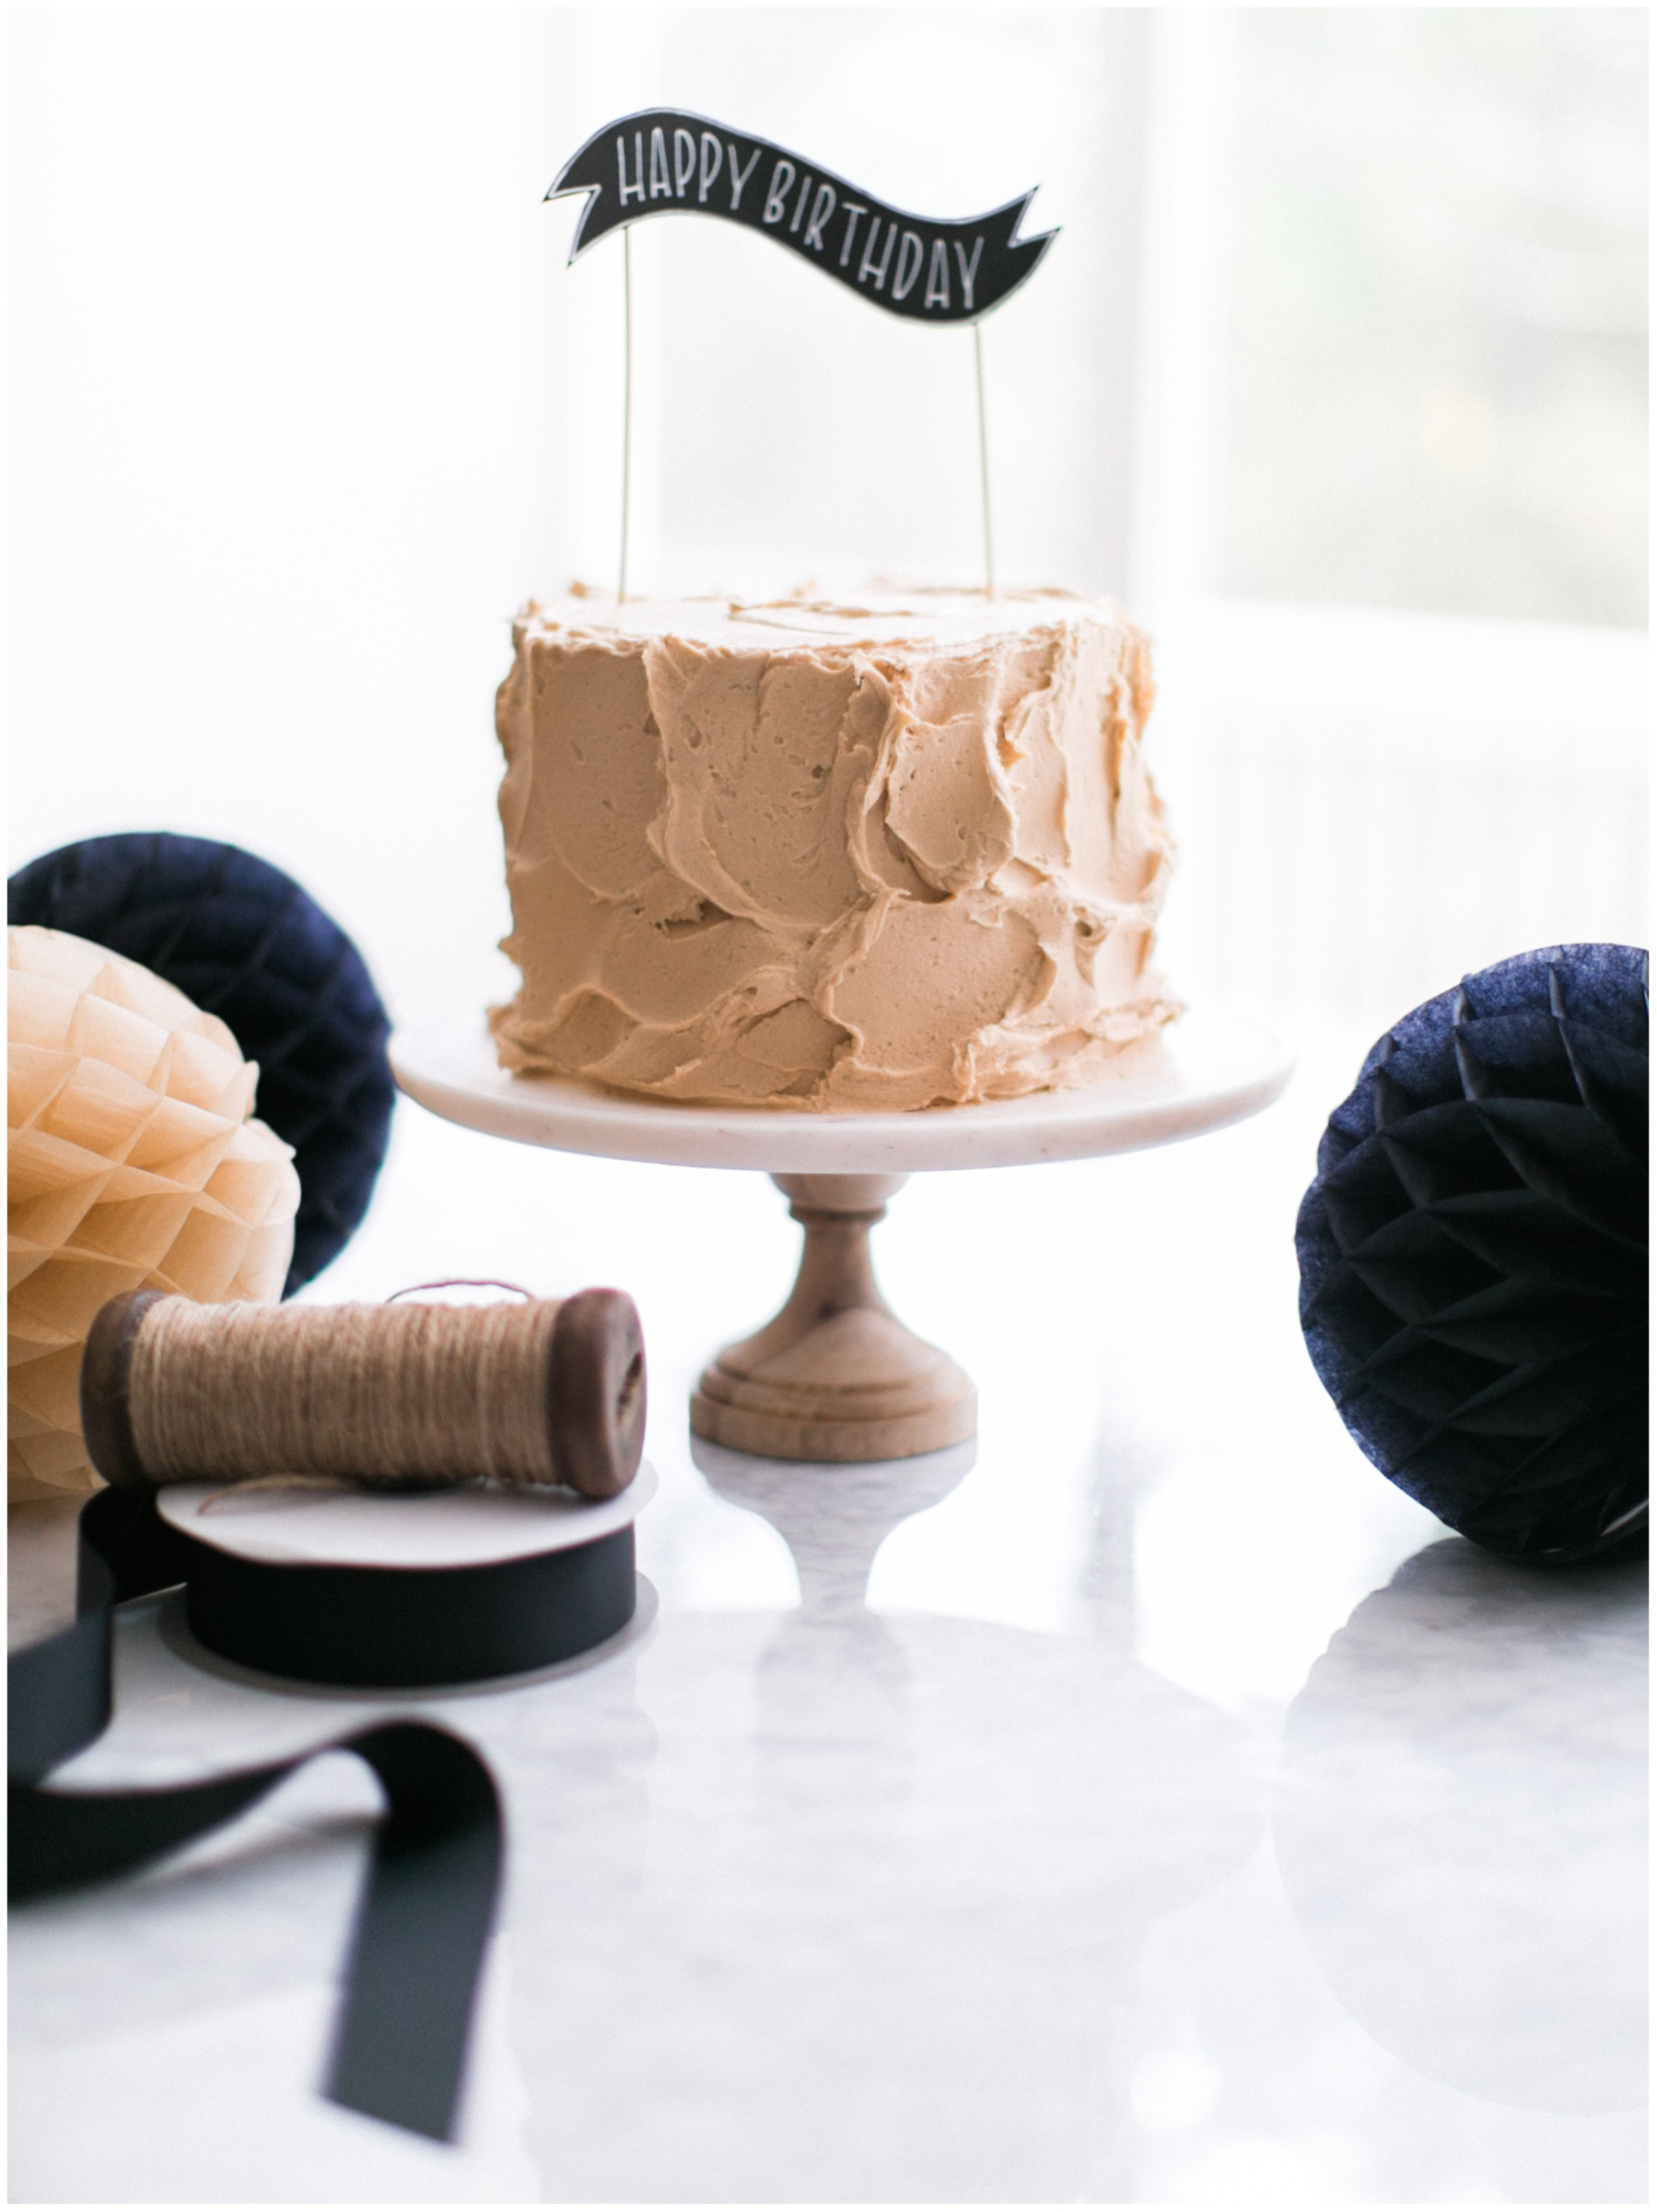 sinclair-and-moore-chocolate-peanutbutter-cake-26